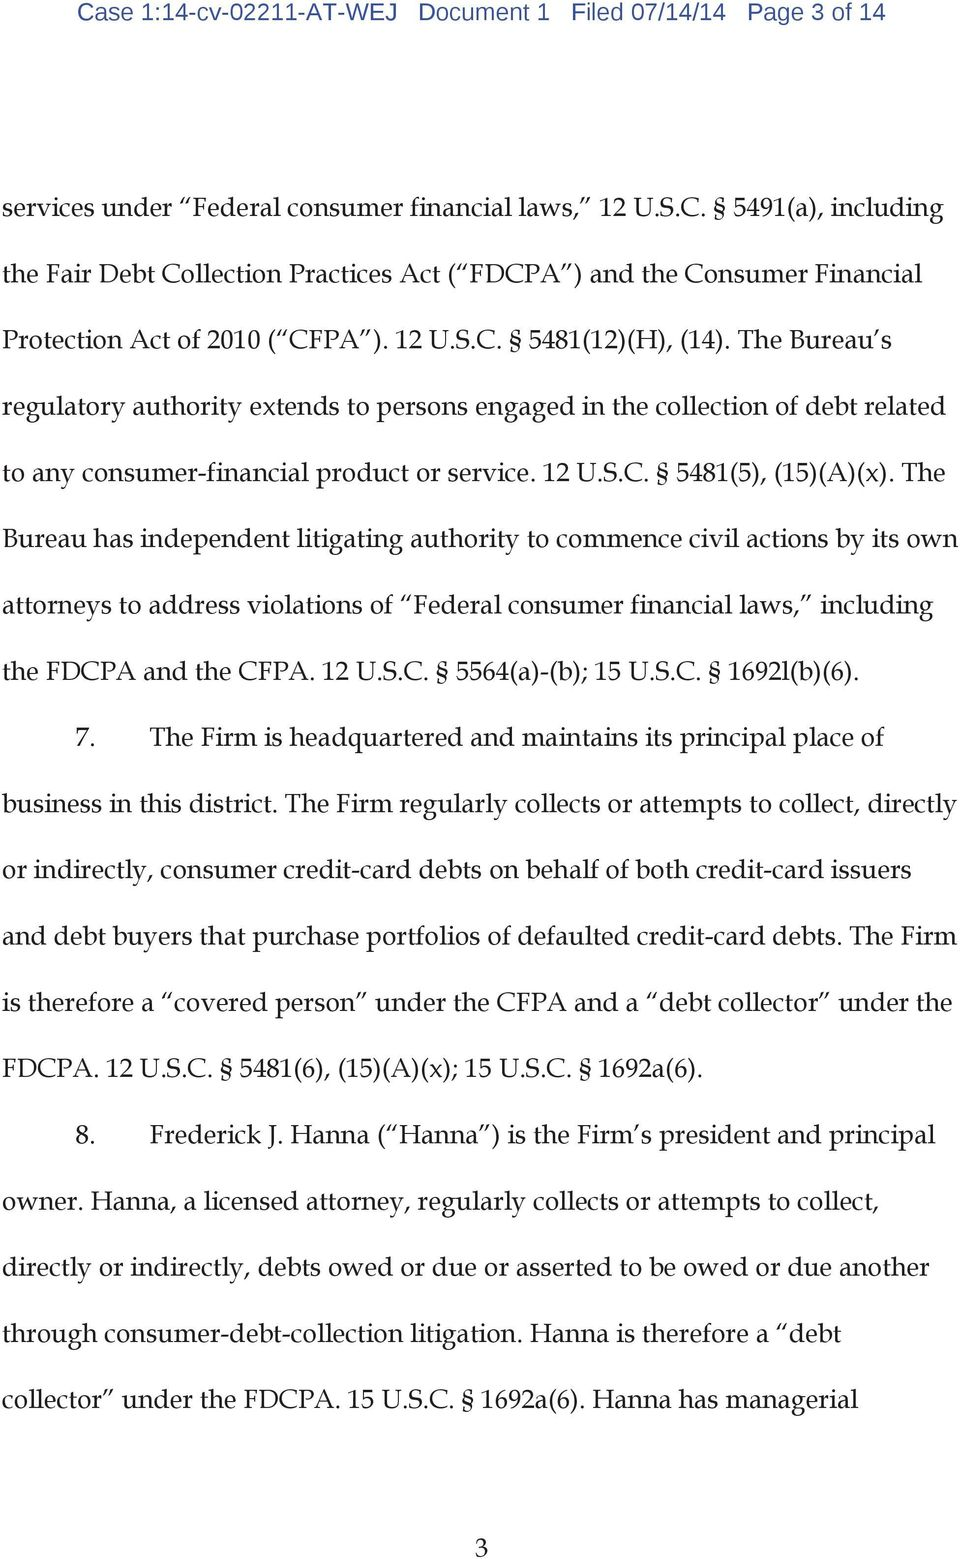 The Bureau has independent litigating authority to commence civil actions by its own attorneys to address violations of Federal consumer financial laws, including the FDCPA and the CFPA. 12 U.S.C. 5564(a)-(b); 15 U.